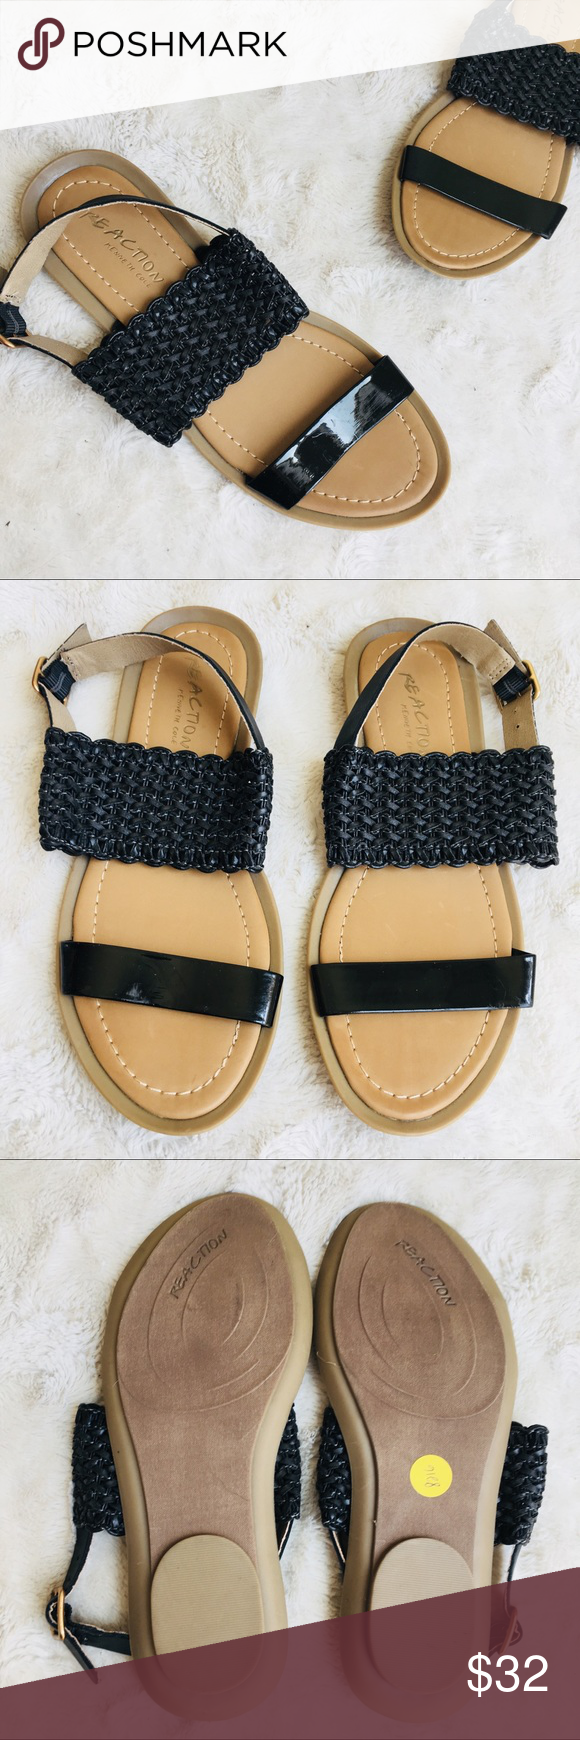 2c3a62773e63 NWT Reaction Kenneth Cole black sandals Reaction by Kenneth Cole black  sandals. Braided looking thick strap with slimmer patent looking toe strap.